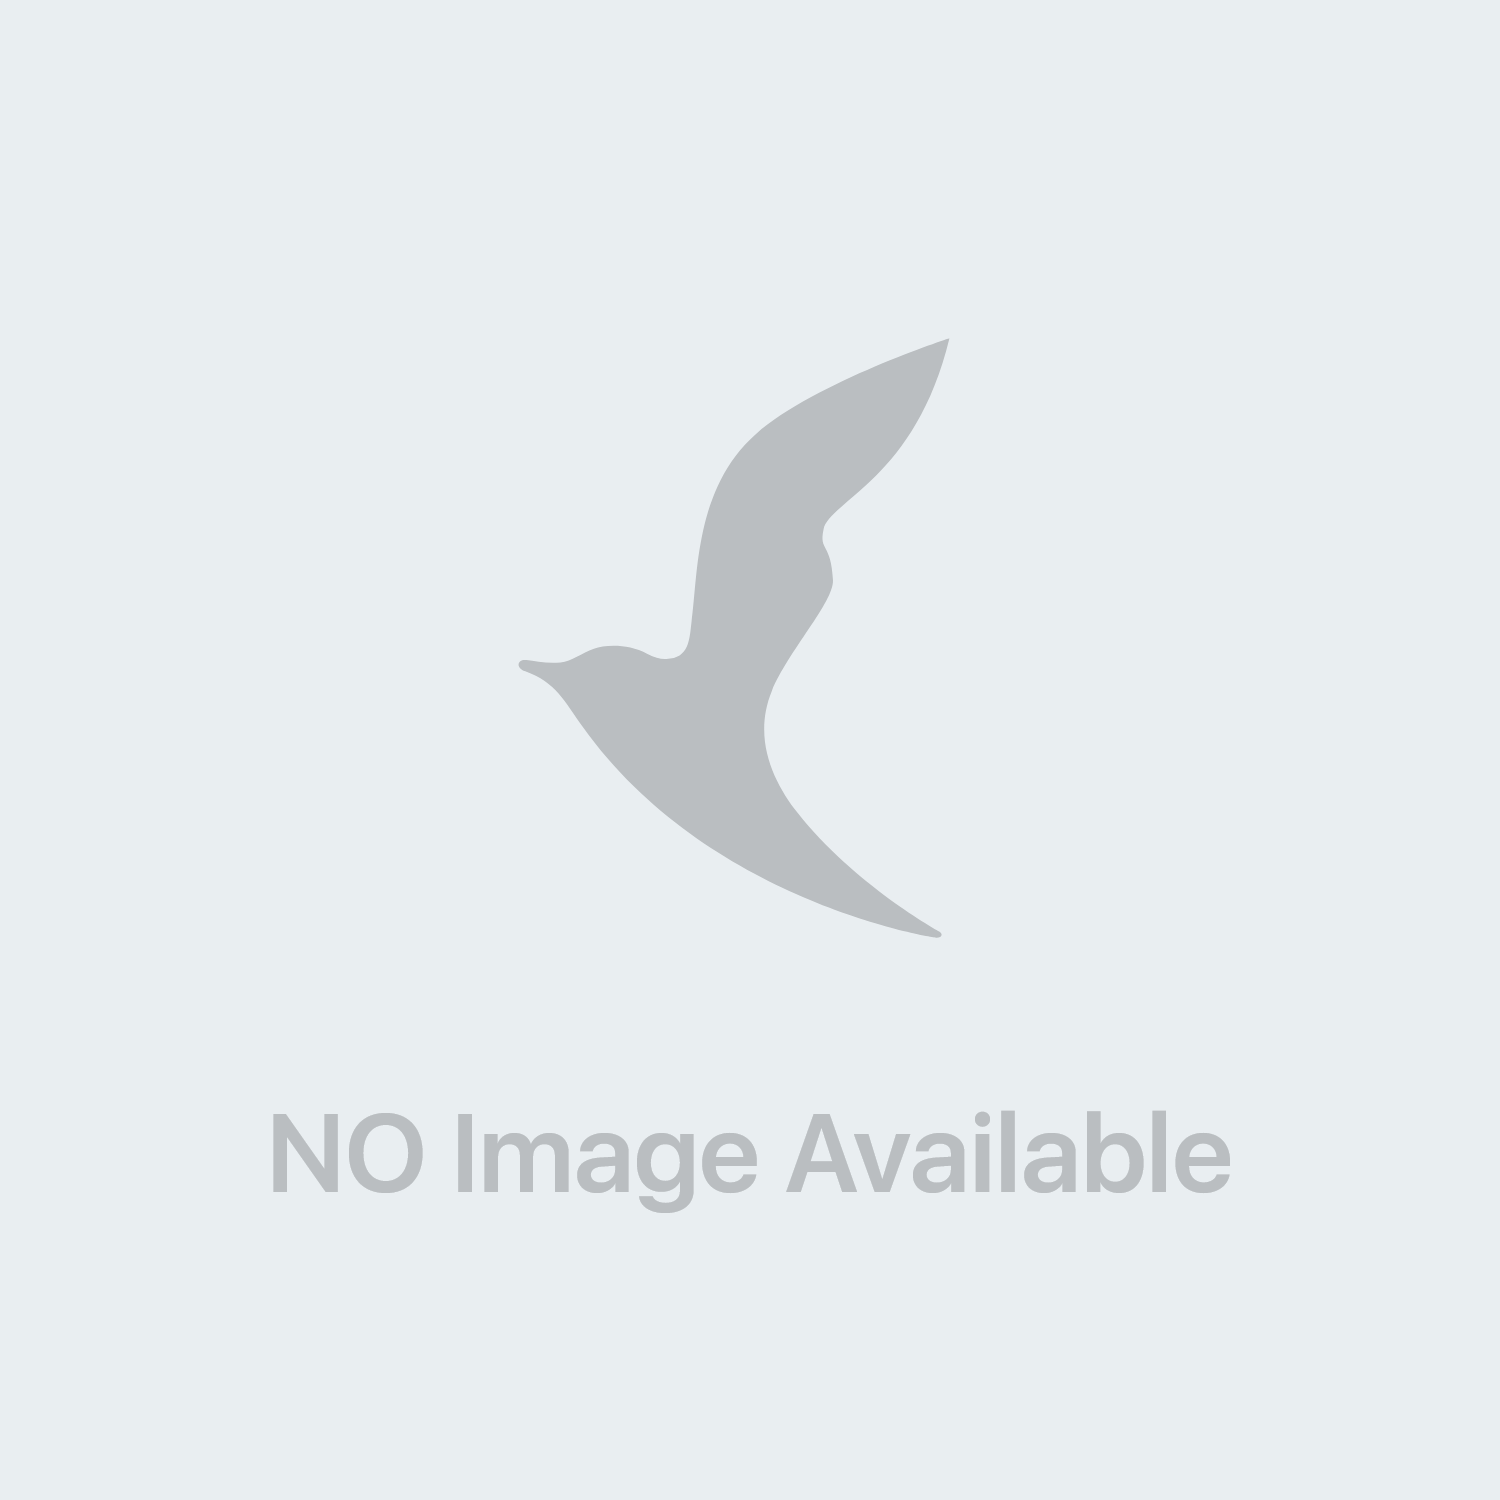 Warmies Peluche Termico Cane Marrone